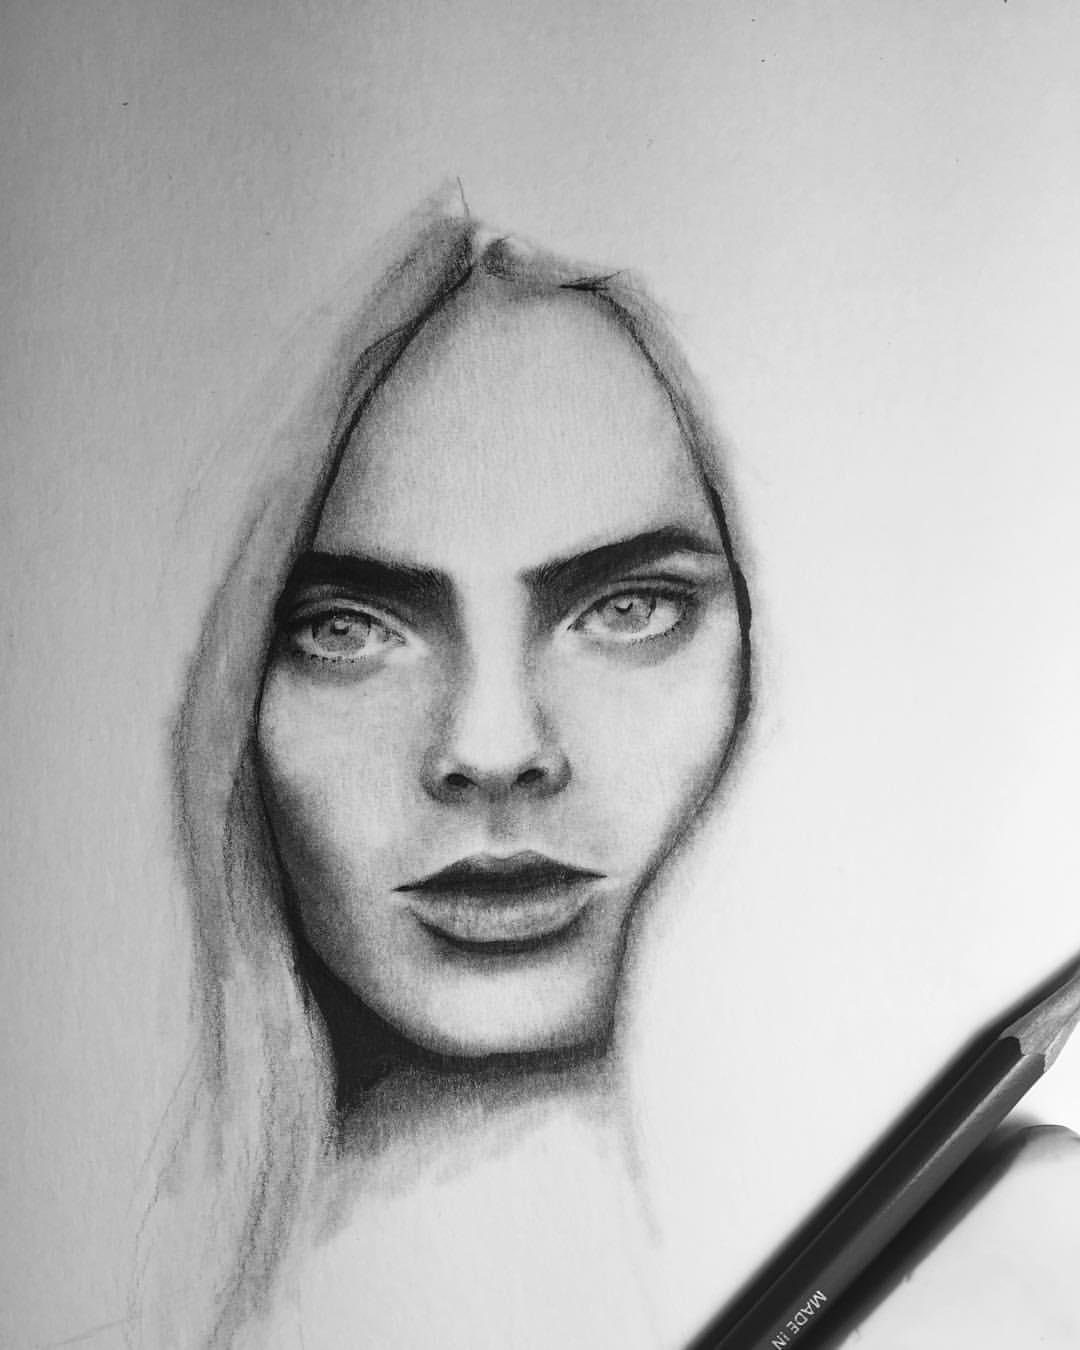 Drawn portrait tumblr drawing Cara MAOMEESAMMY portrait drawing Delevingne